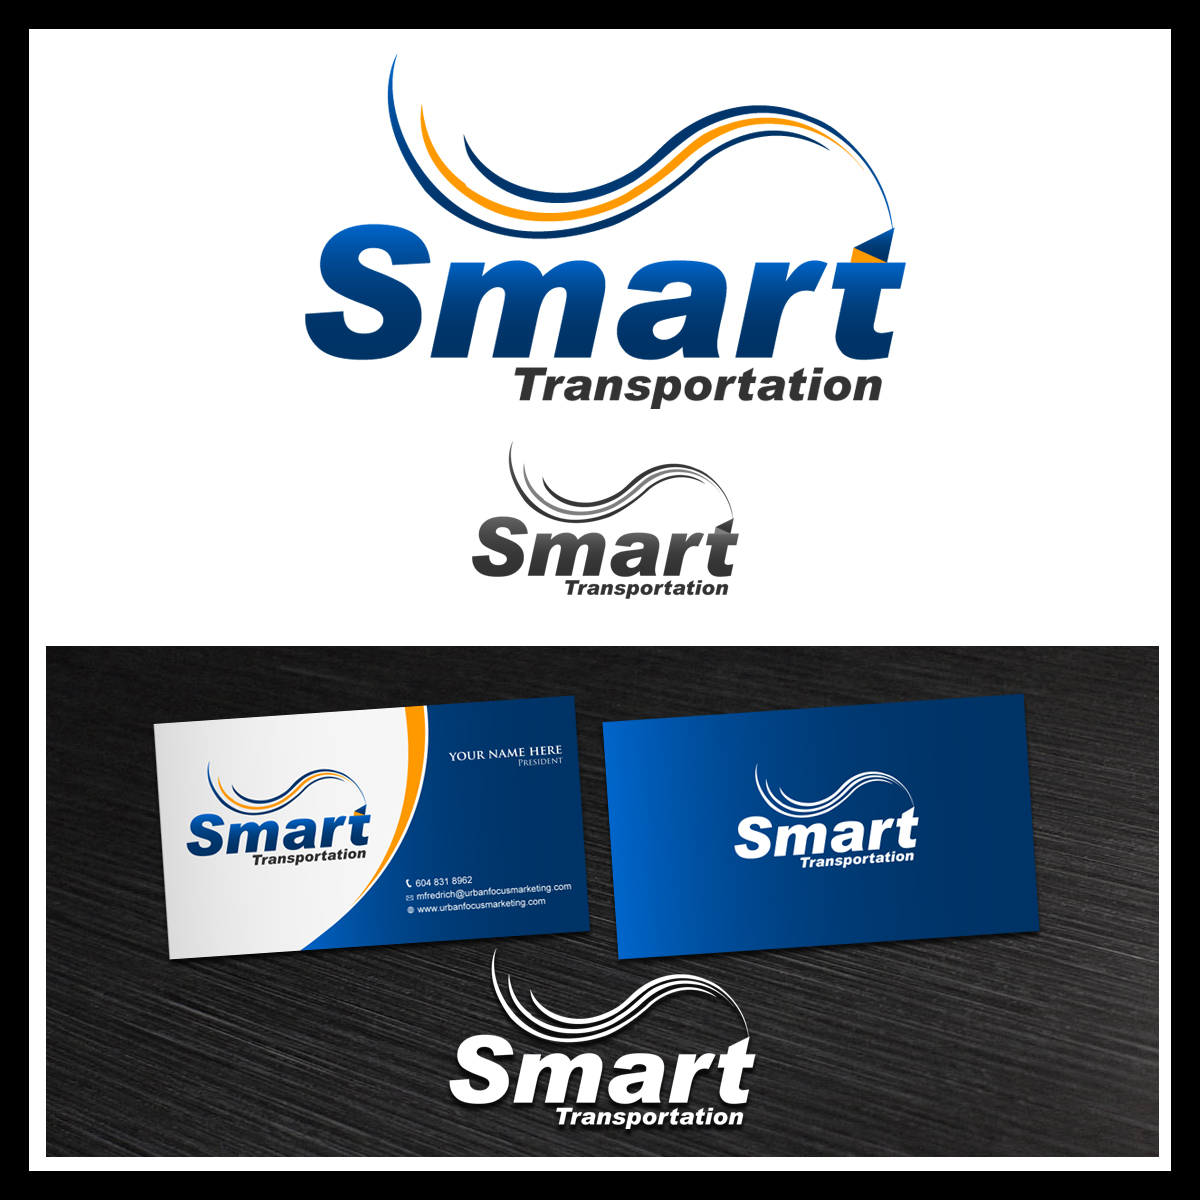 Logo Design by pixdesign - Entry No. 97 in the Logo Design Contest Imaginative Logo Design for Smart Transportation.